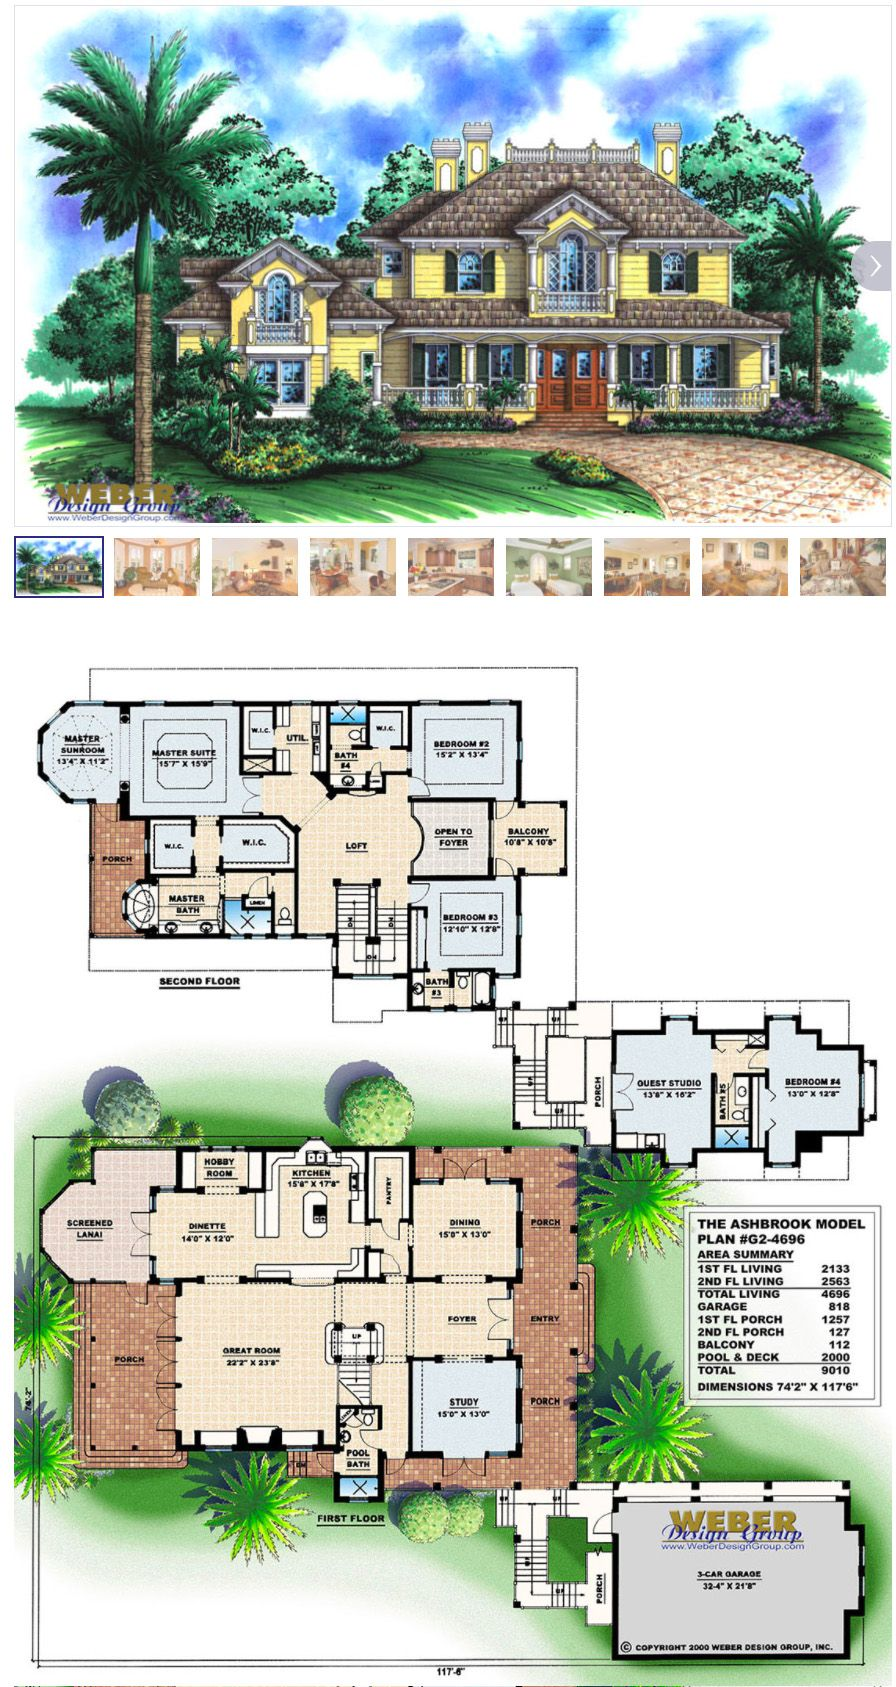 2 Story House Plan Charleston Style Waterfront Home Floor Plan Lake View House Plans Craftsman House Plans House Plans With Photos